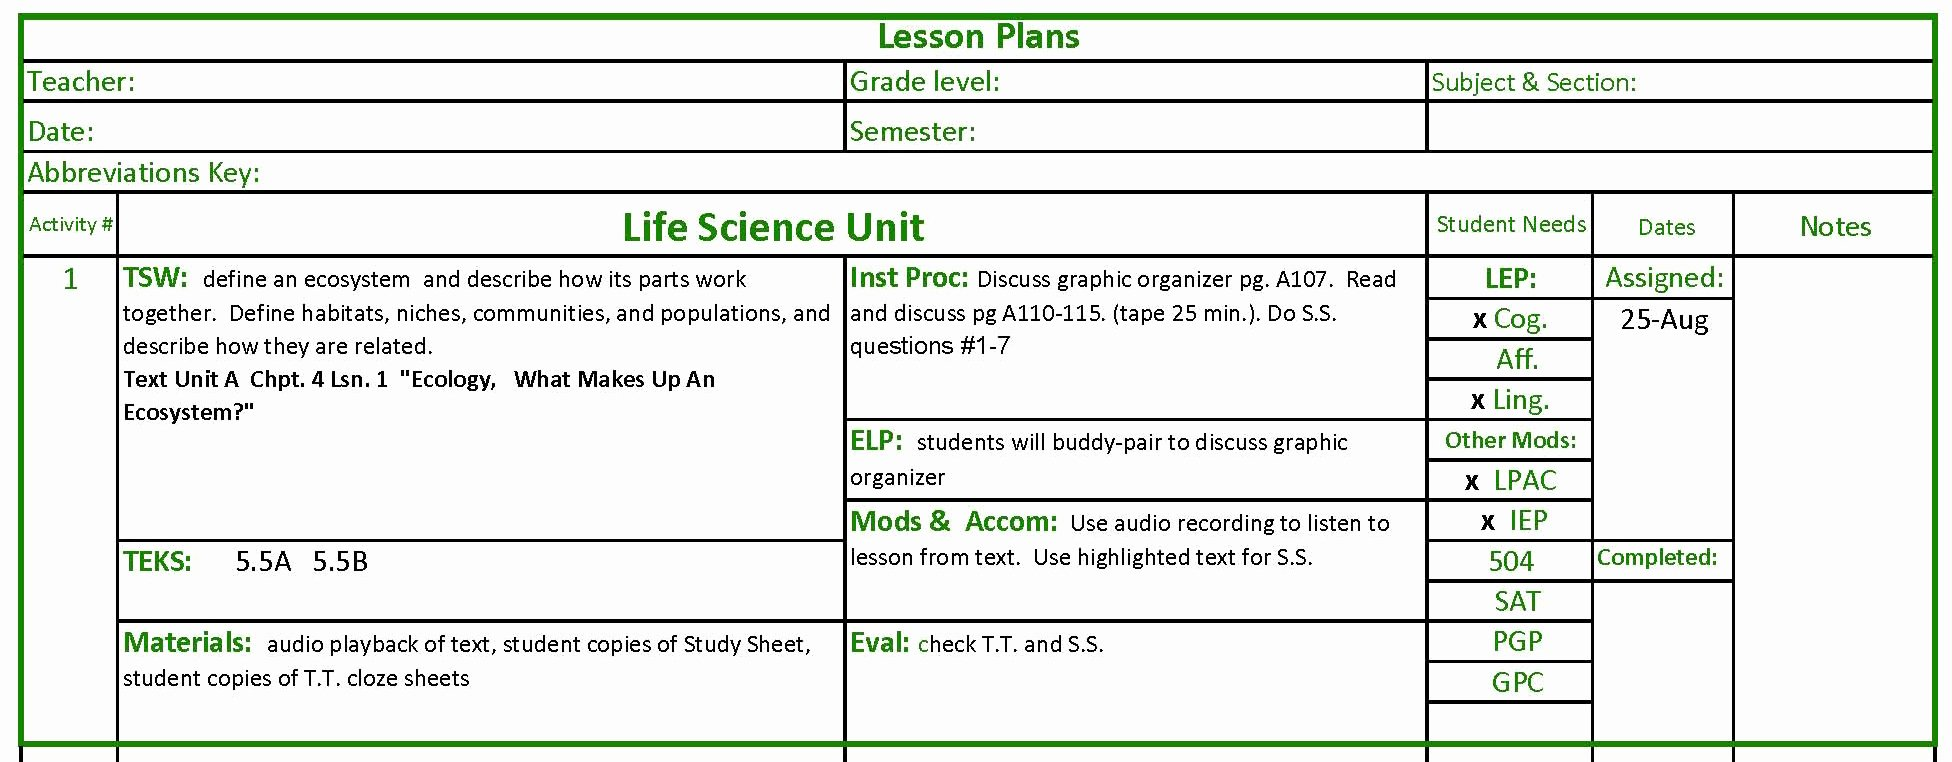 Science Lesson Plan Template Luxury Science Lesson Planning Jeriboyer